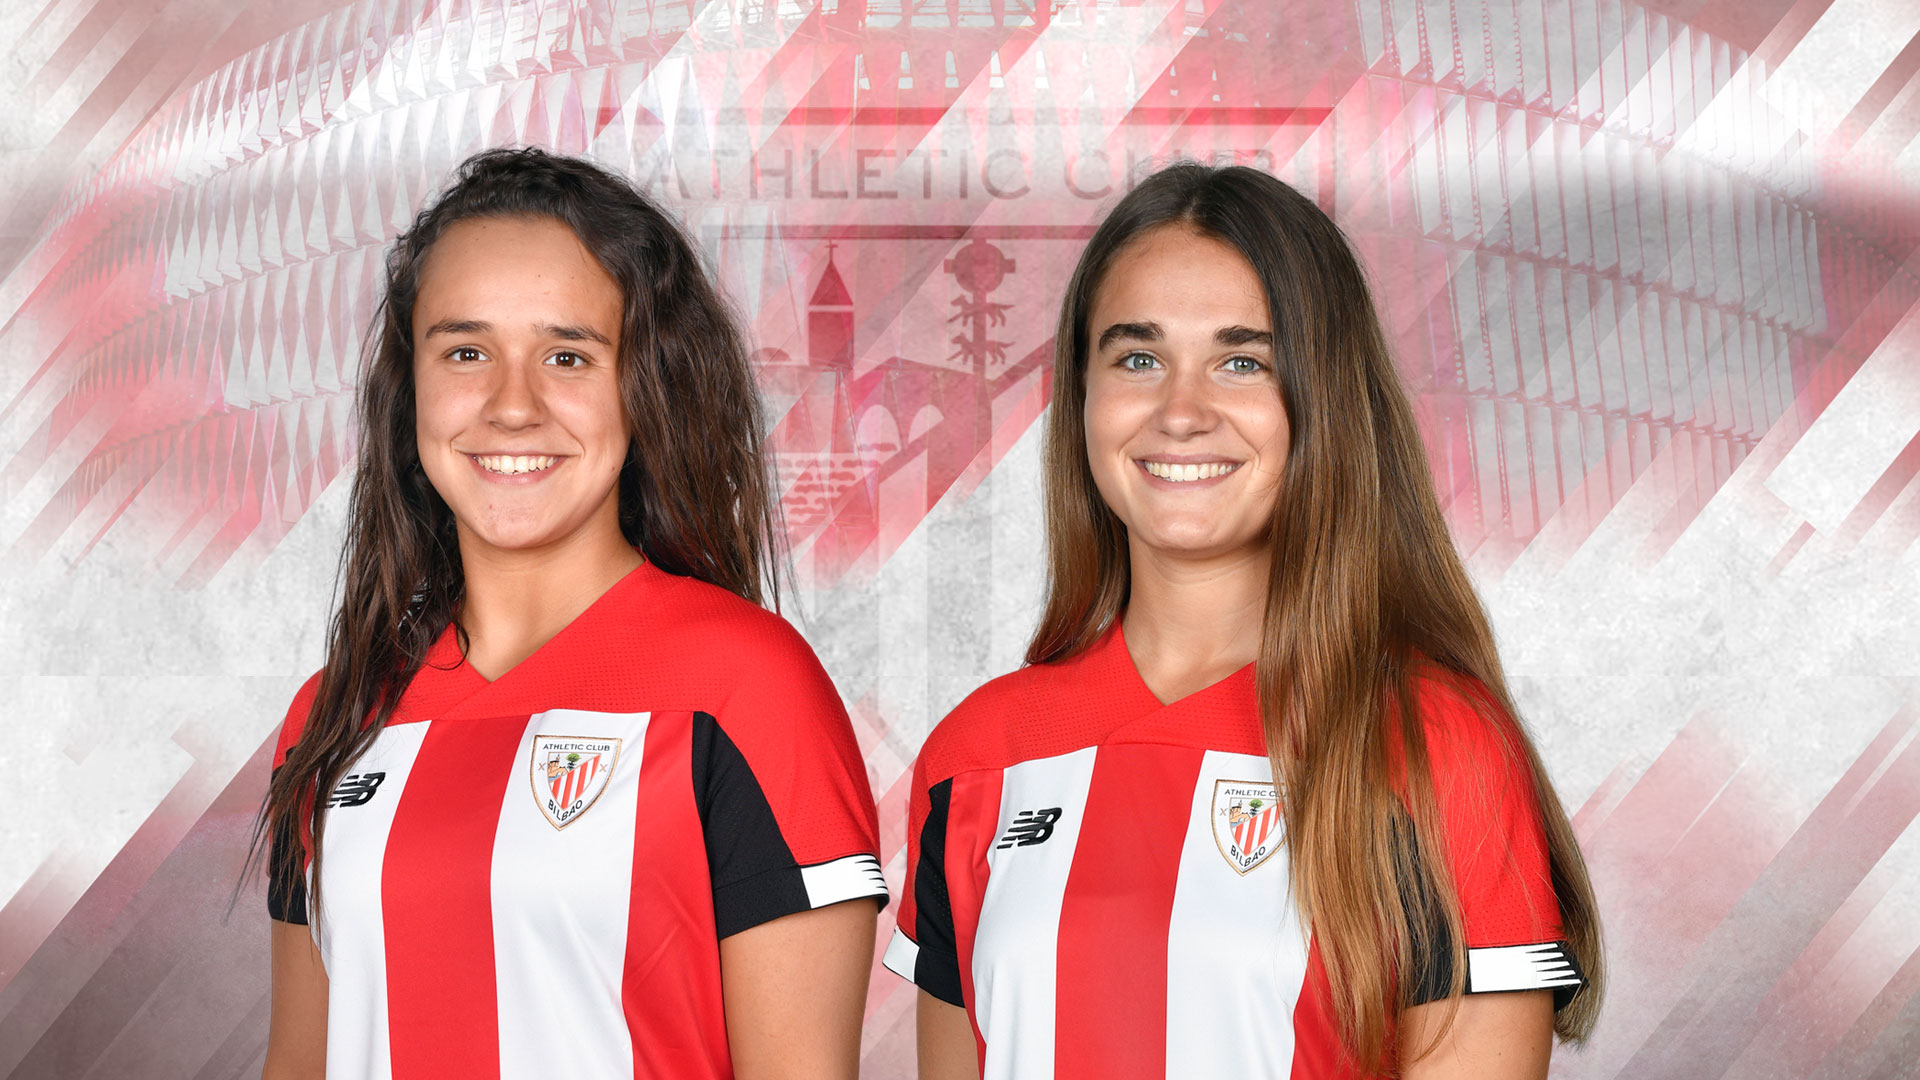 Nevado and Uriarte on the way to the U-19 European Championship